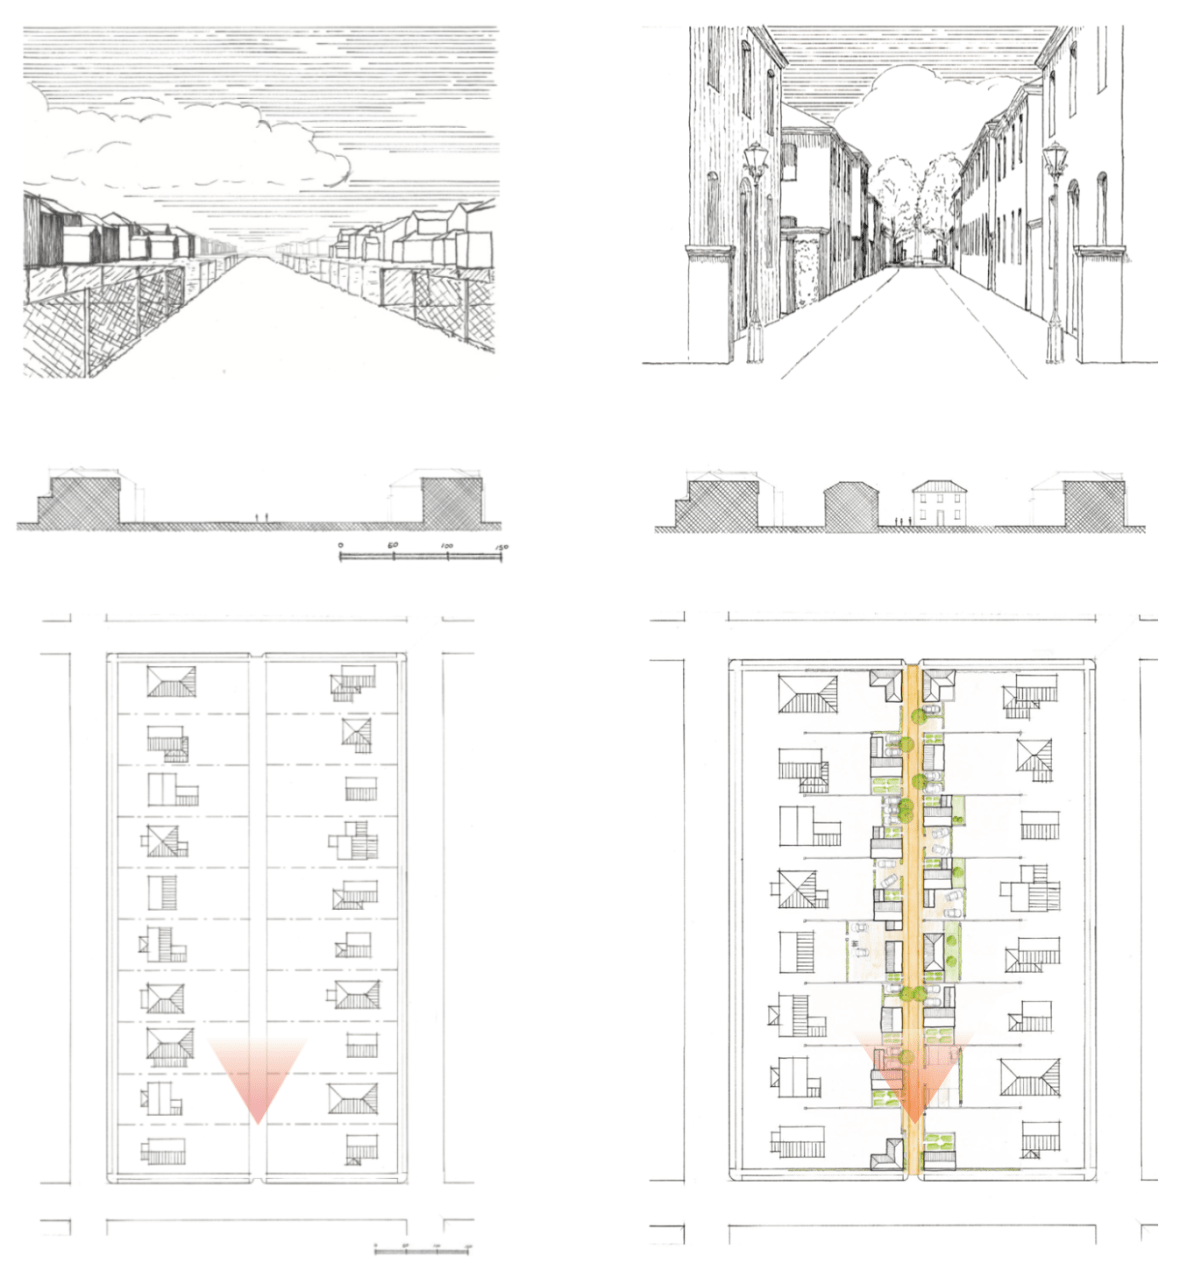 From service alley to minor street. (Click to enlarge.)